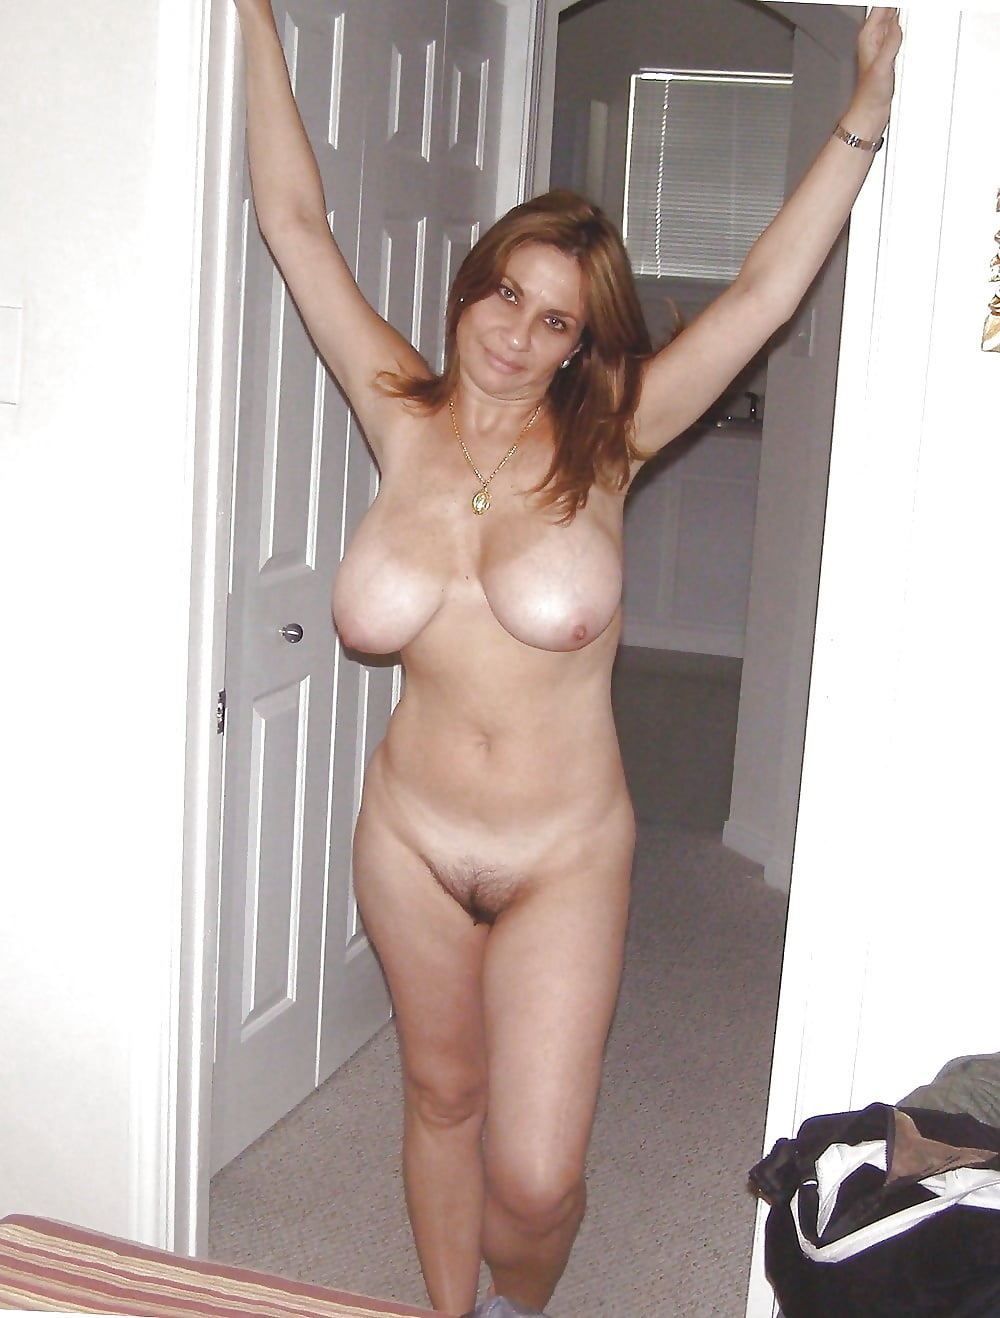 Extreme saggy tits